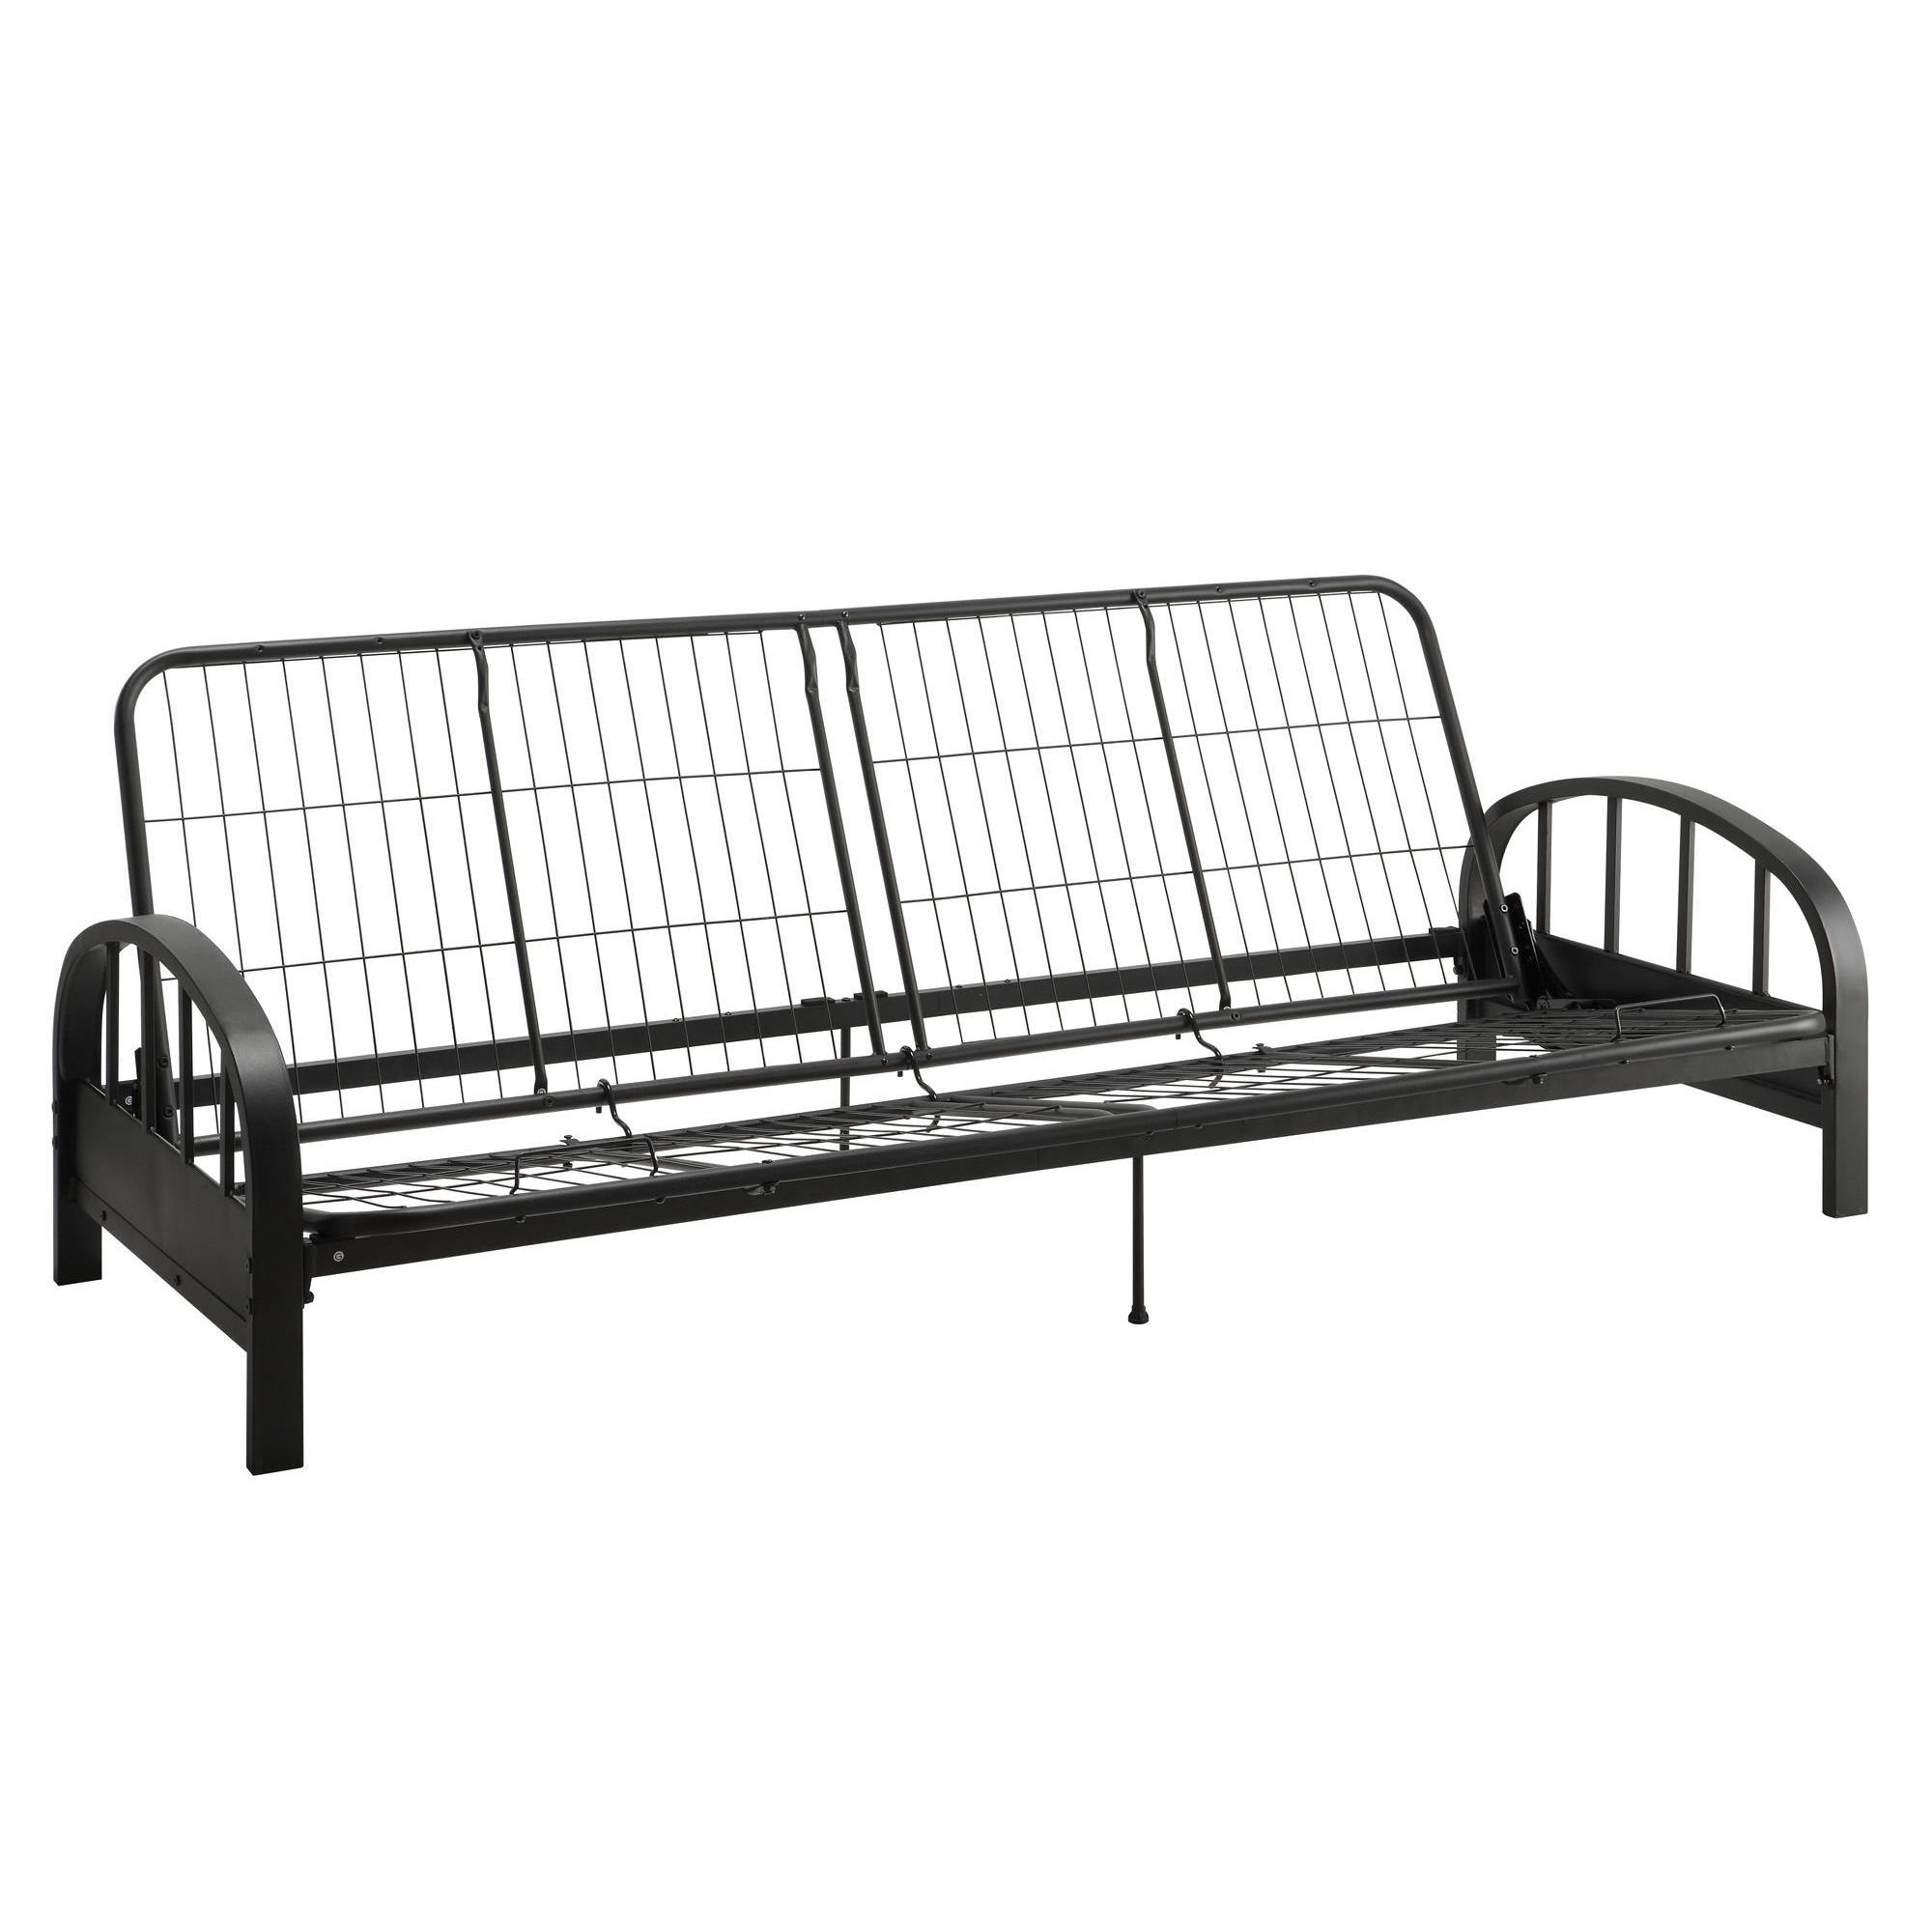 with metal mattress futon futons choice wood frame multiple quot encased coil co arm colors black dhp nadine independently